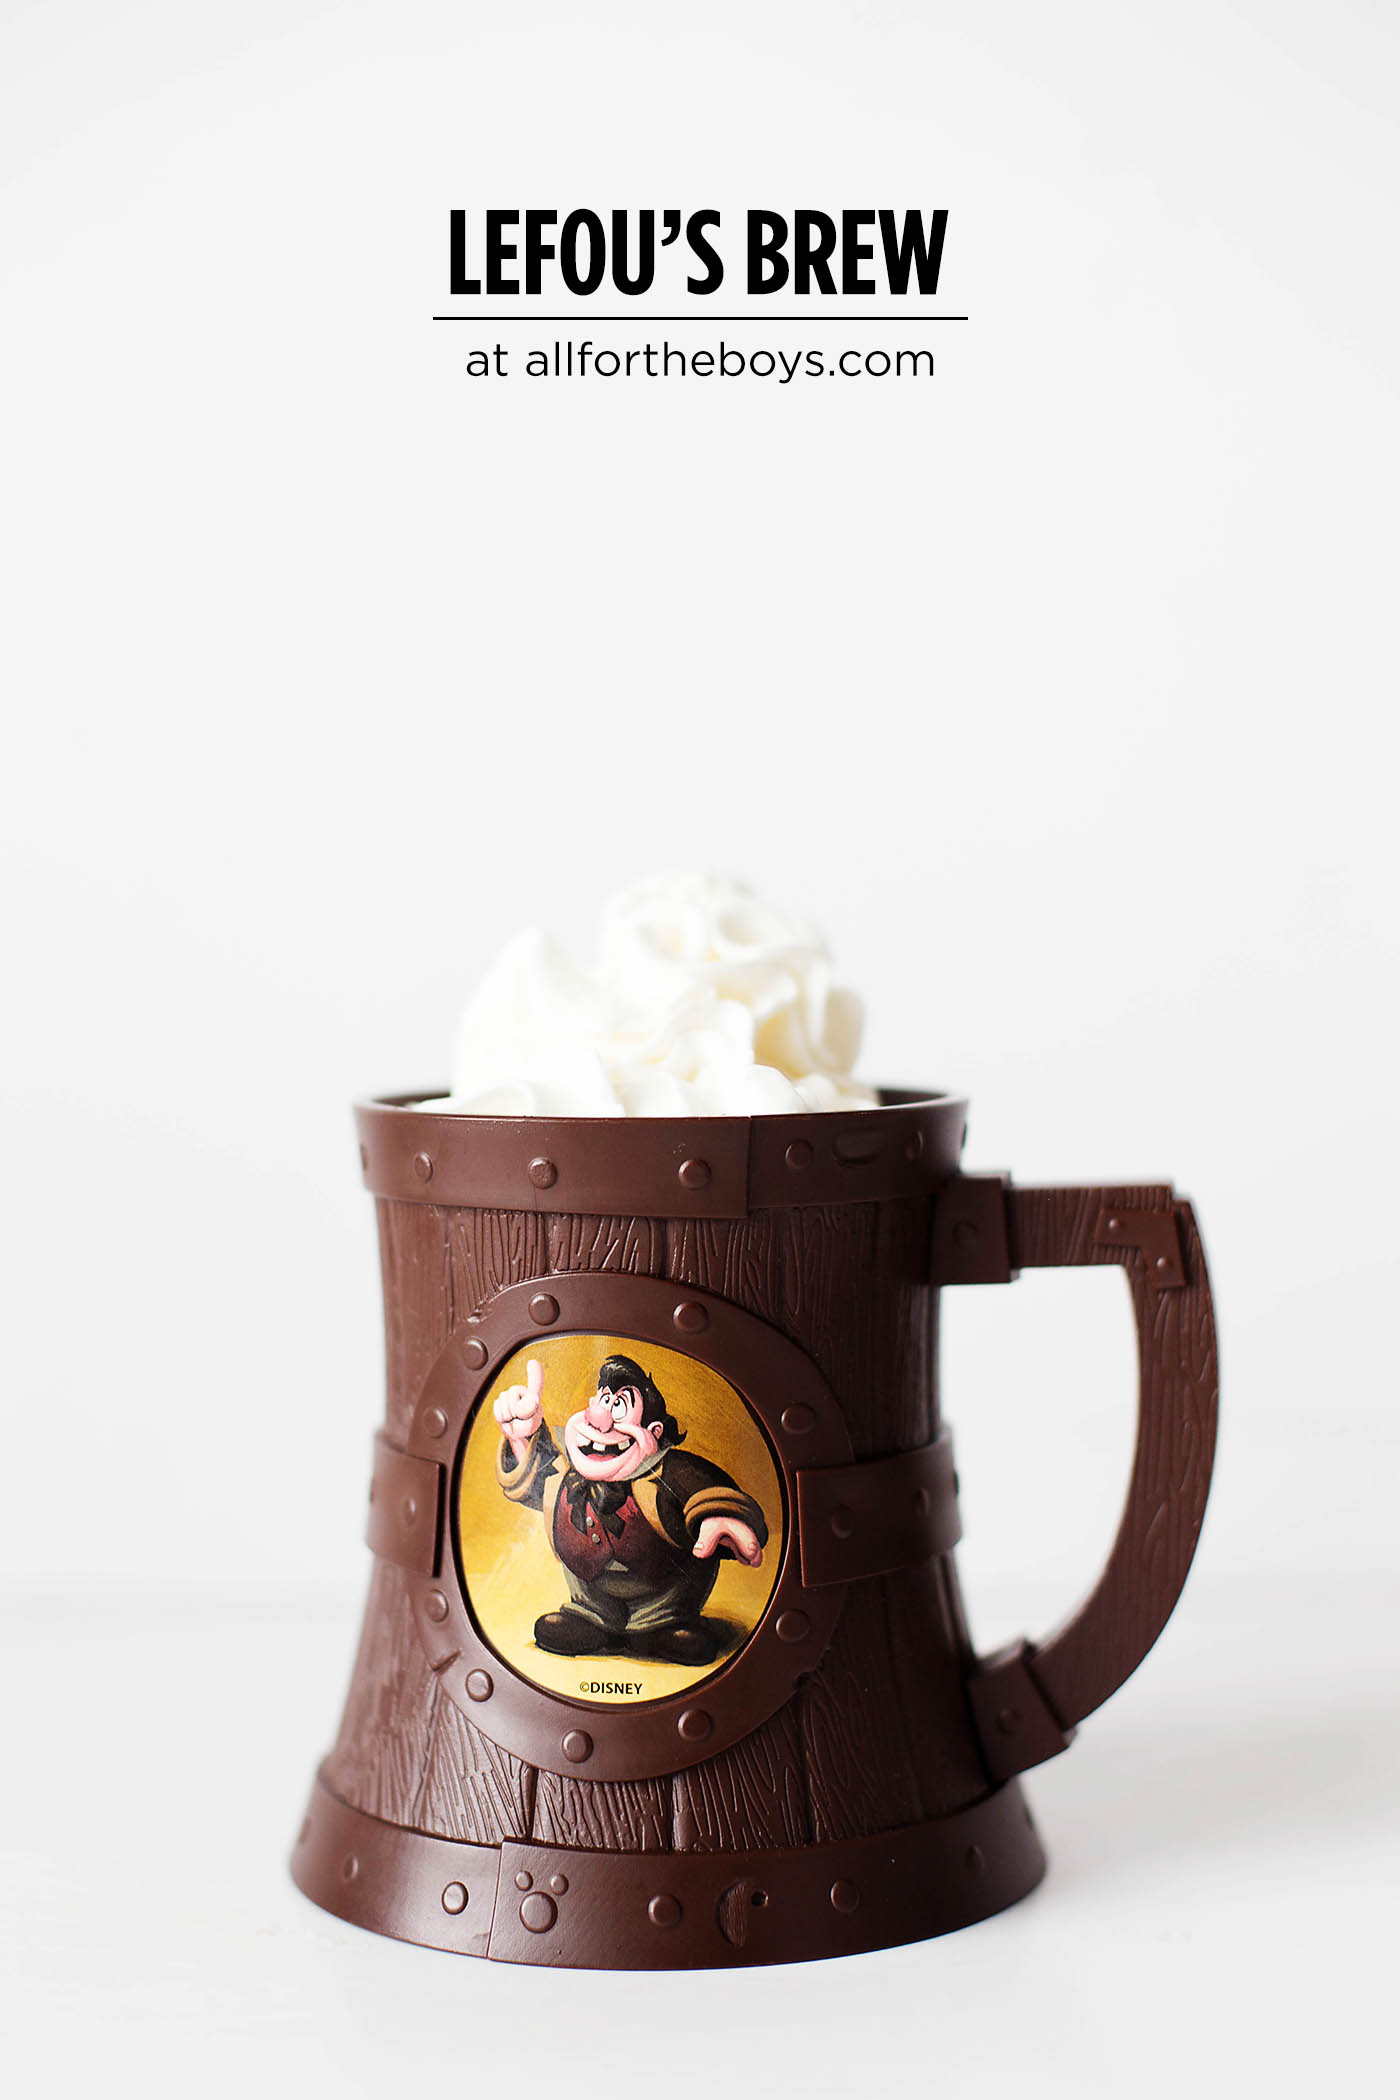 Lefou's Brew - a recipe inspired by the drink at Walt Disney World